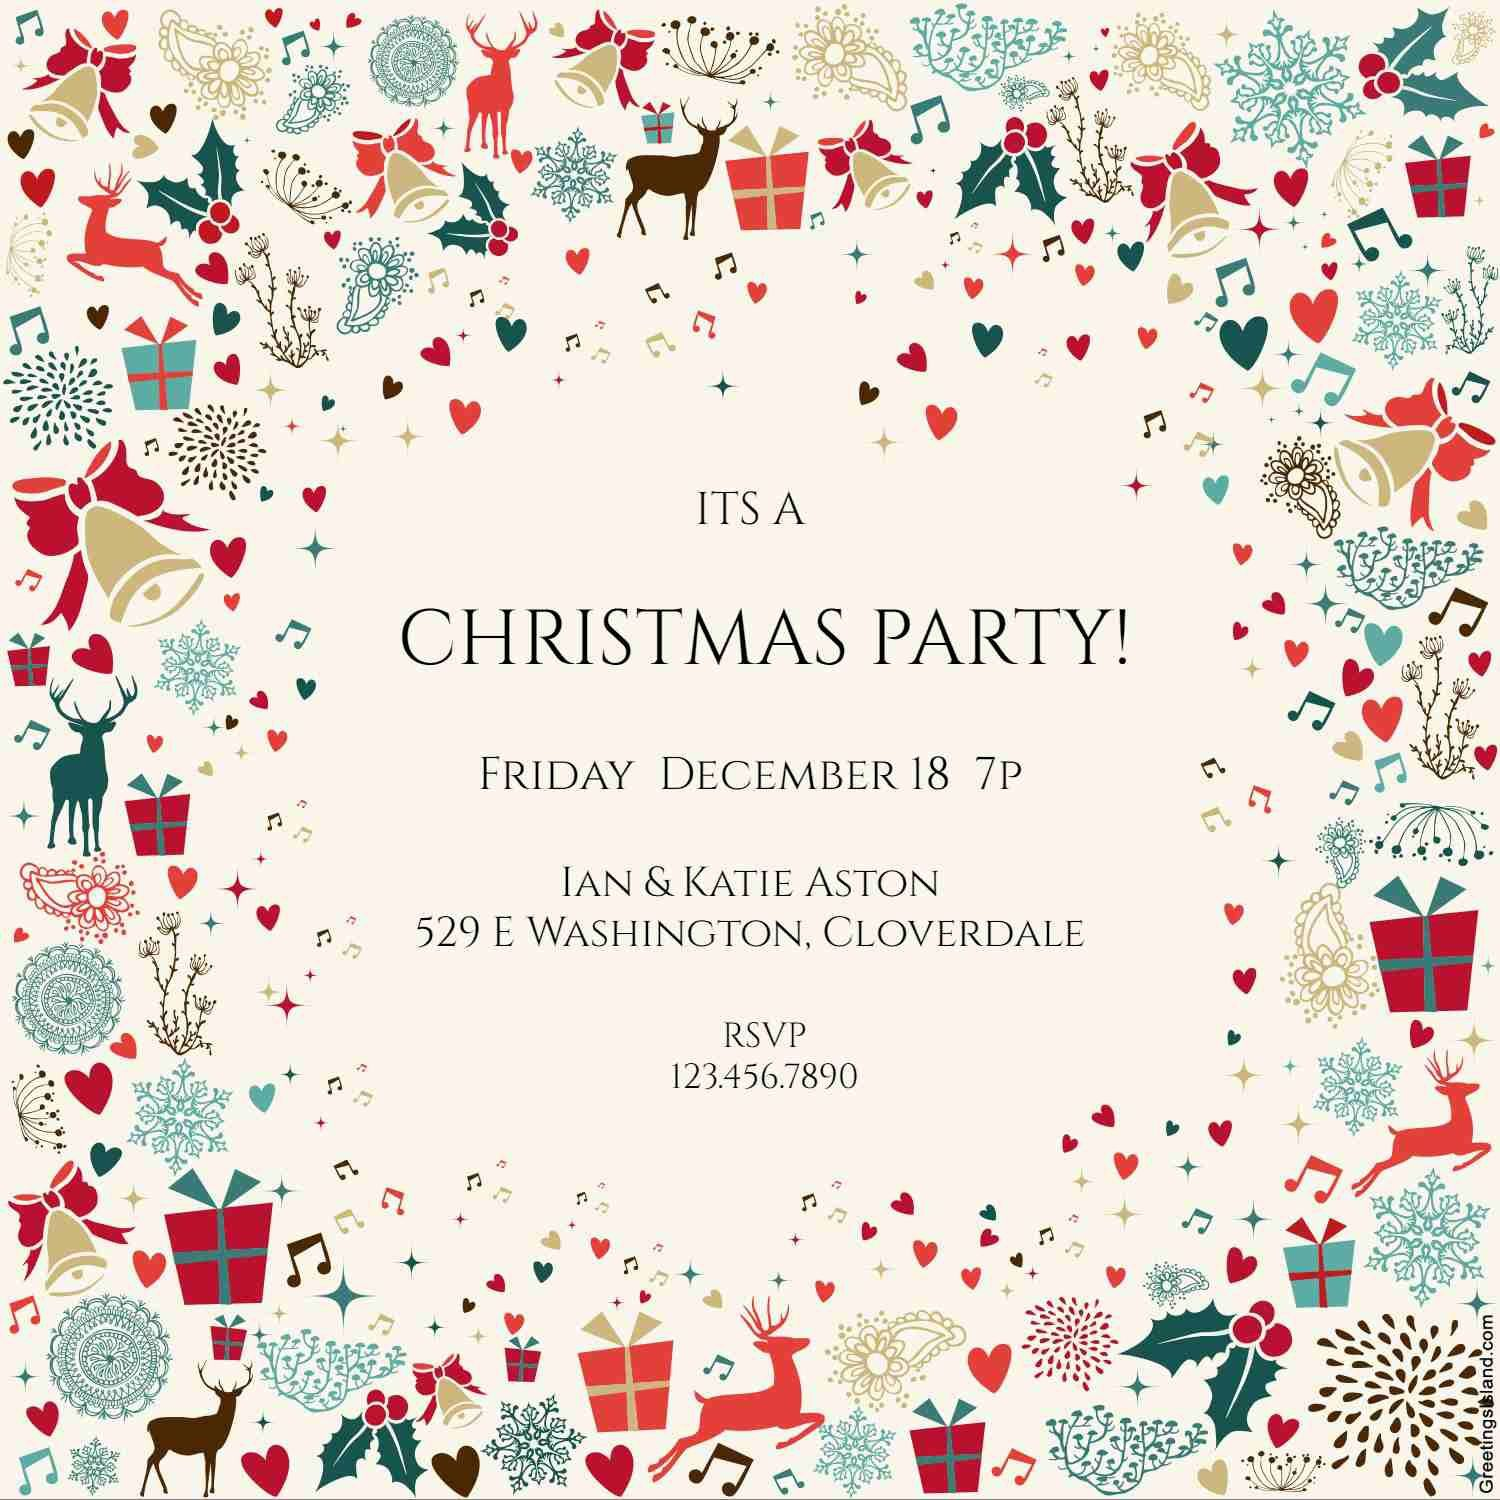 006 Breathtaking Christma Party Invite Template Word Photo  Holiday Free Invitation Wording ExampleFull